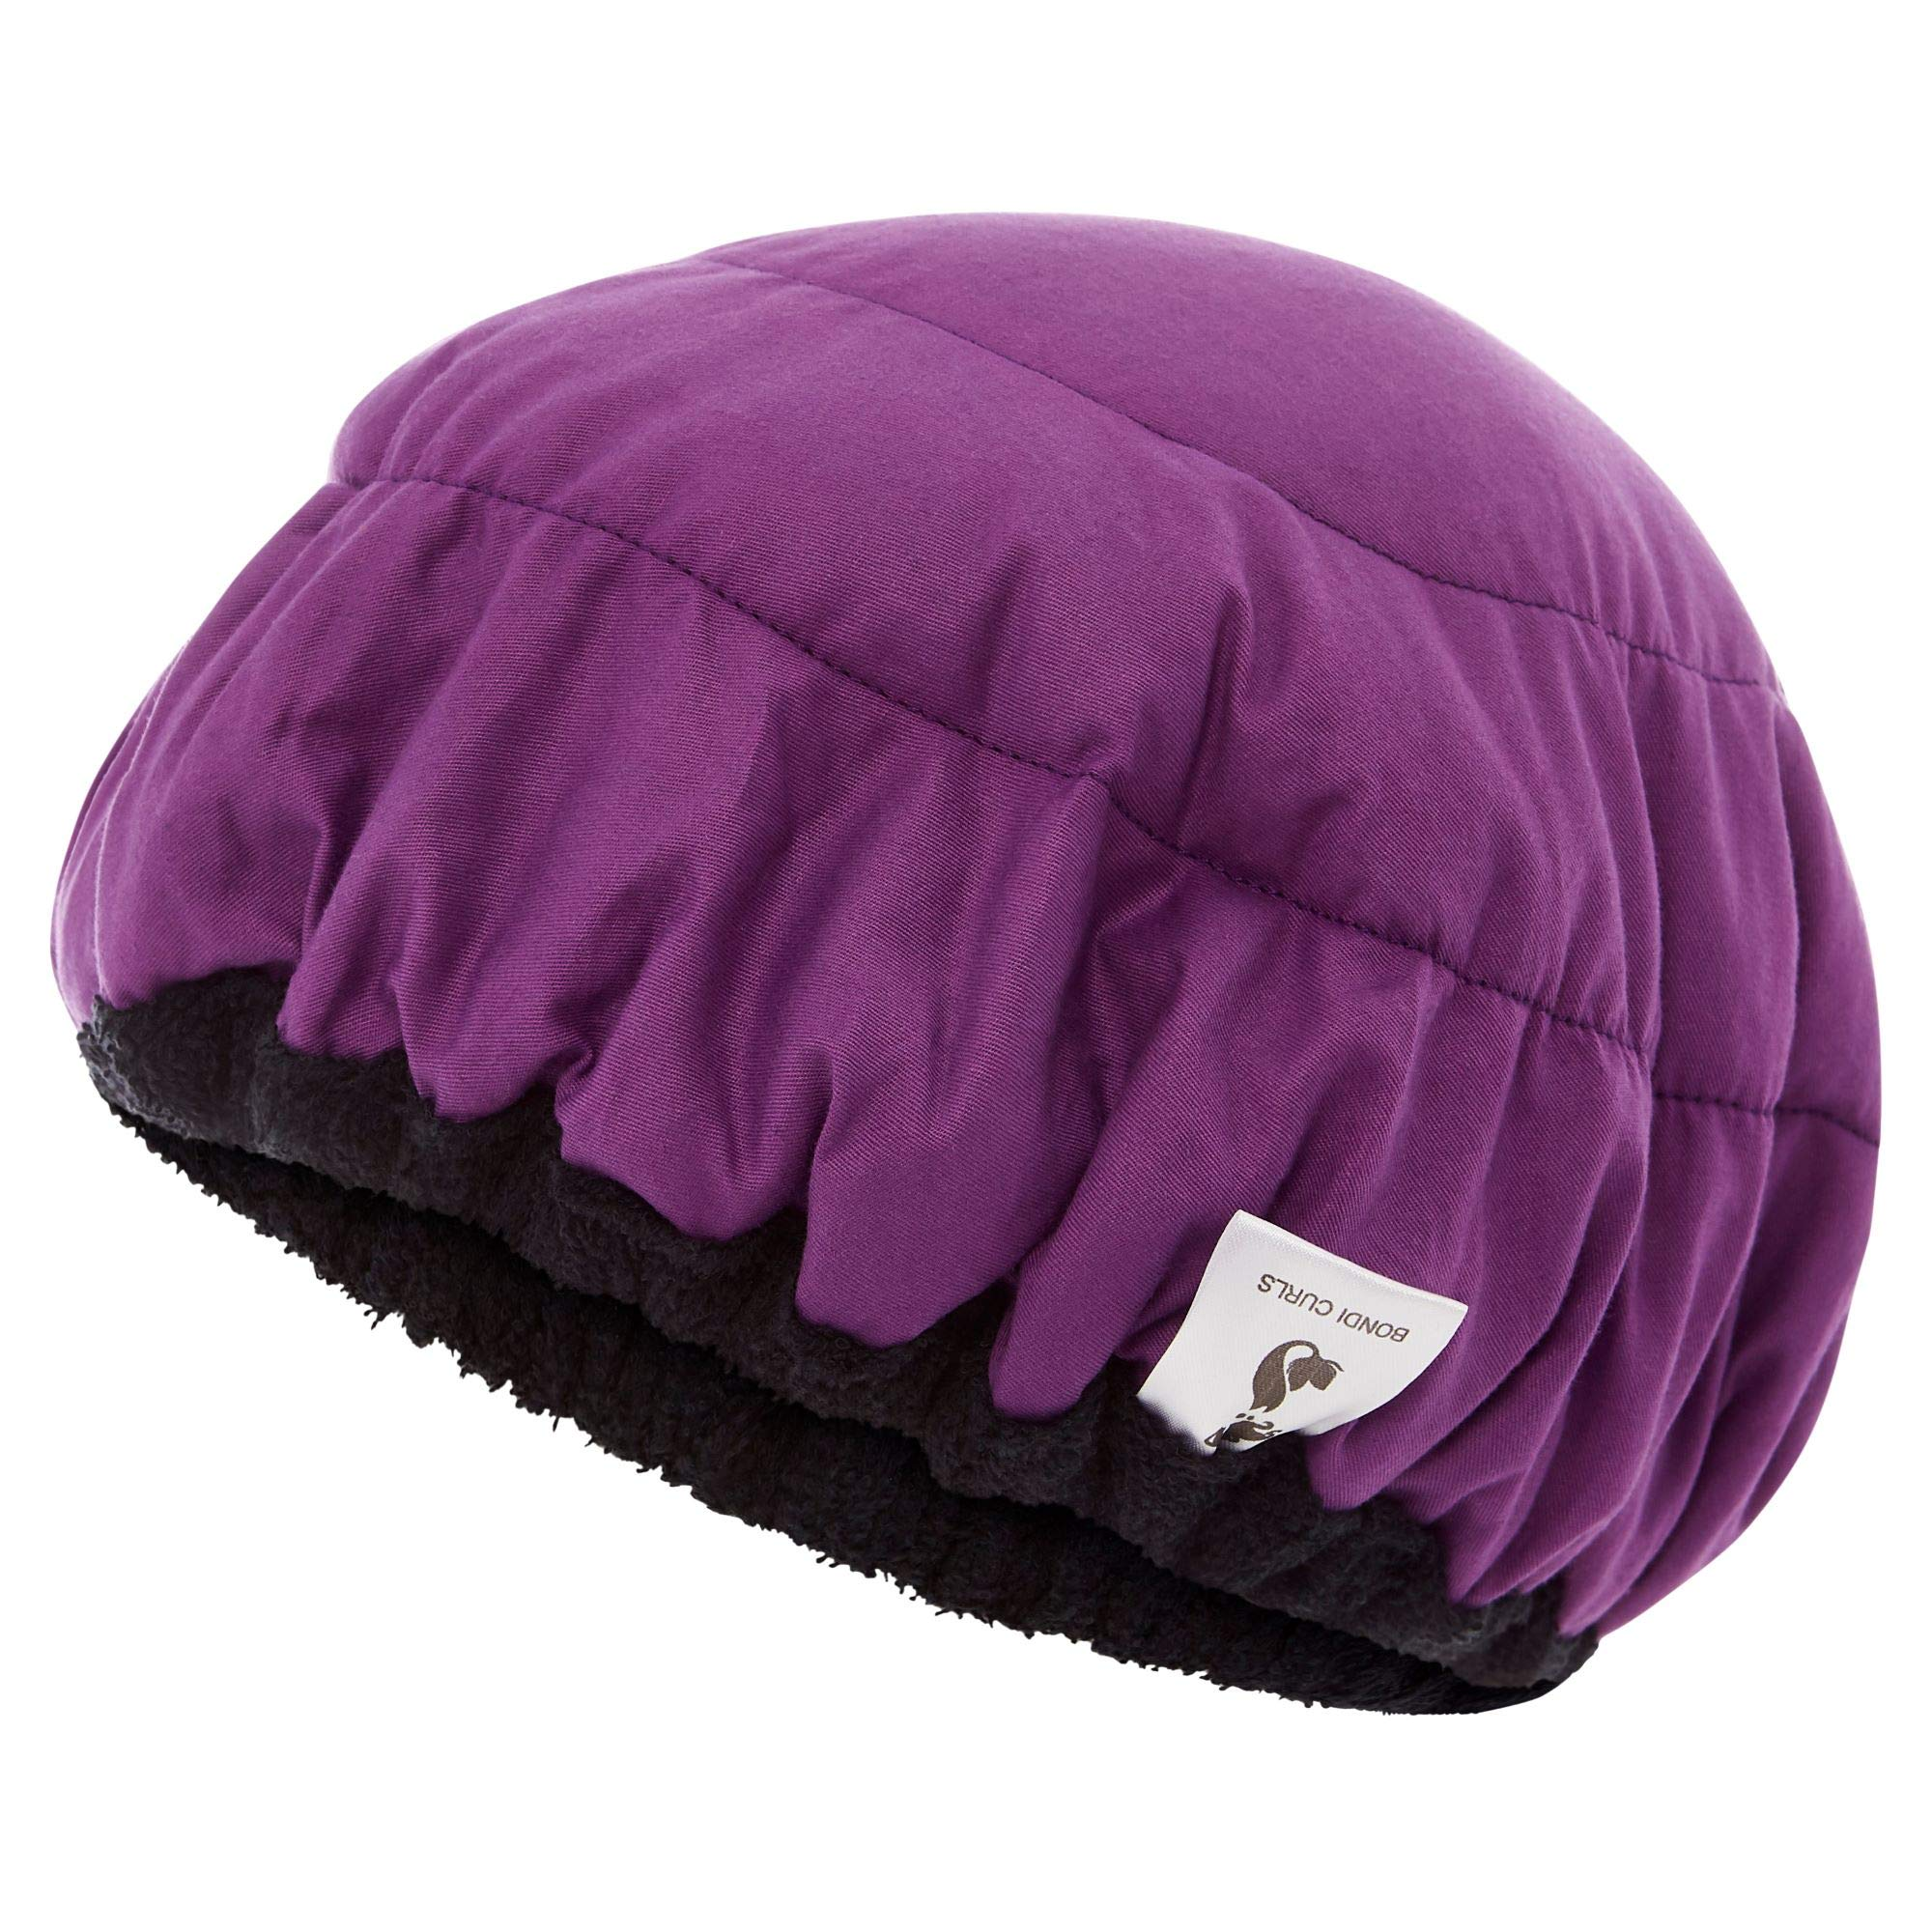 Deep Conditioning Thermal Heat Leopard Print Cap w/Disposable Shower Caps | Curly Girl Method | Steaming Haircare Therapy | Soft, Plush Cotton, Stretchy Nylon | Microwave Safe (Purple/Black)